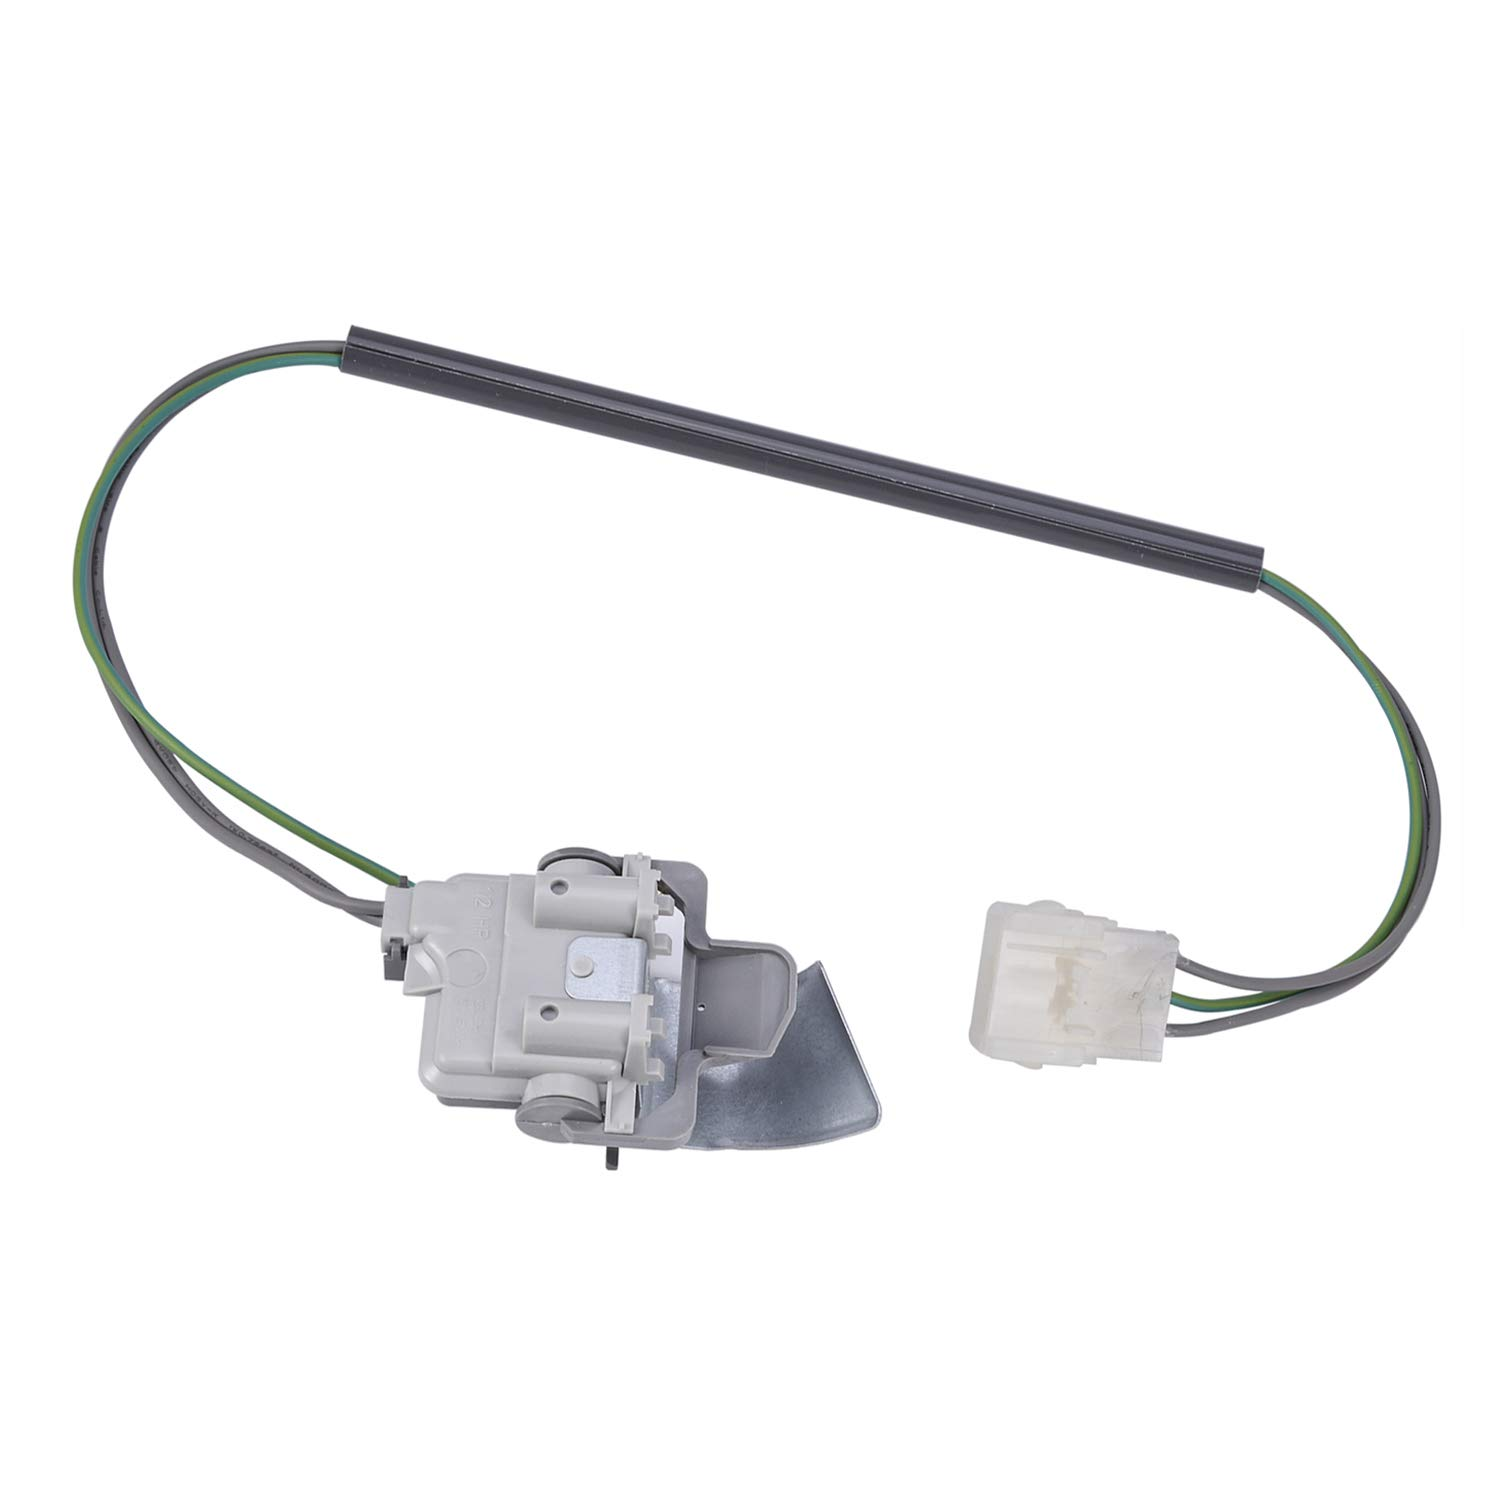 3949238 Washer Lid Switch with Metal Shield Ultra Durable for Whirlpool /& Kenmore Washer Replacement Part AP3100001 PS350431